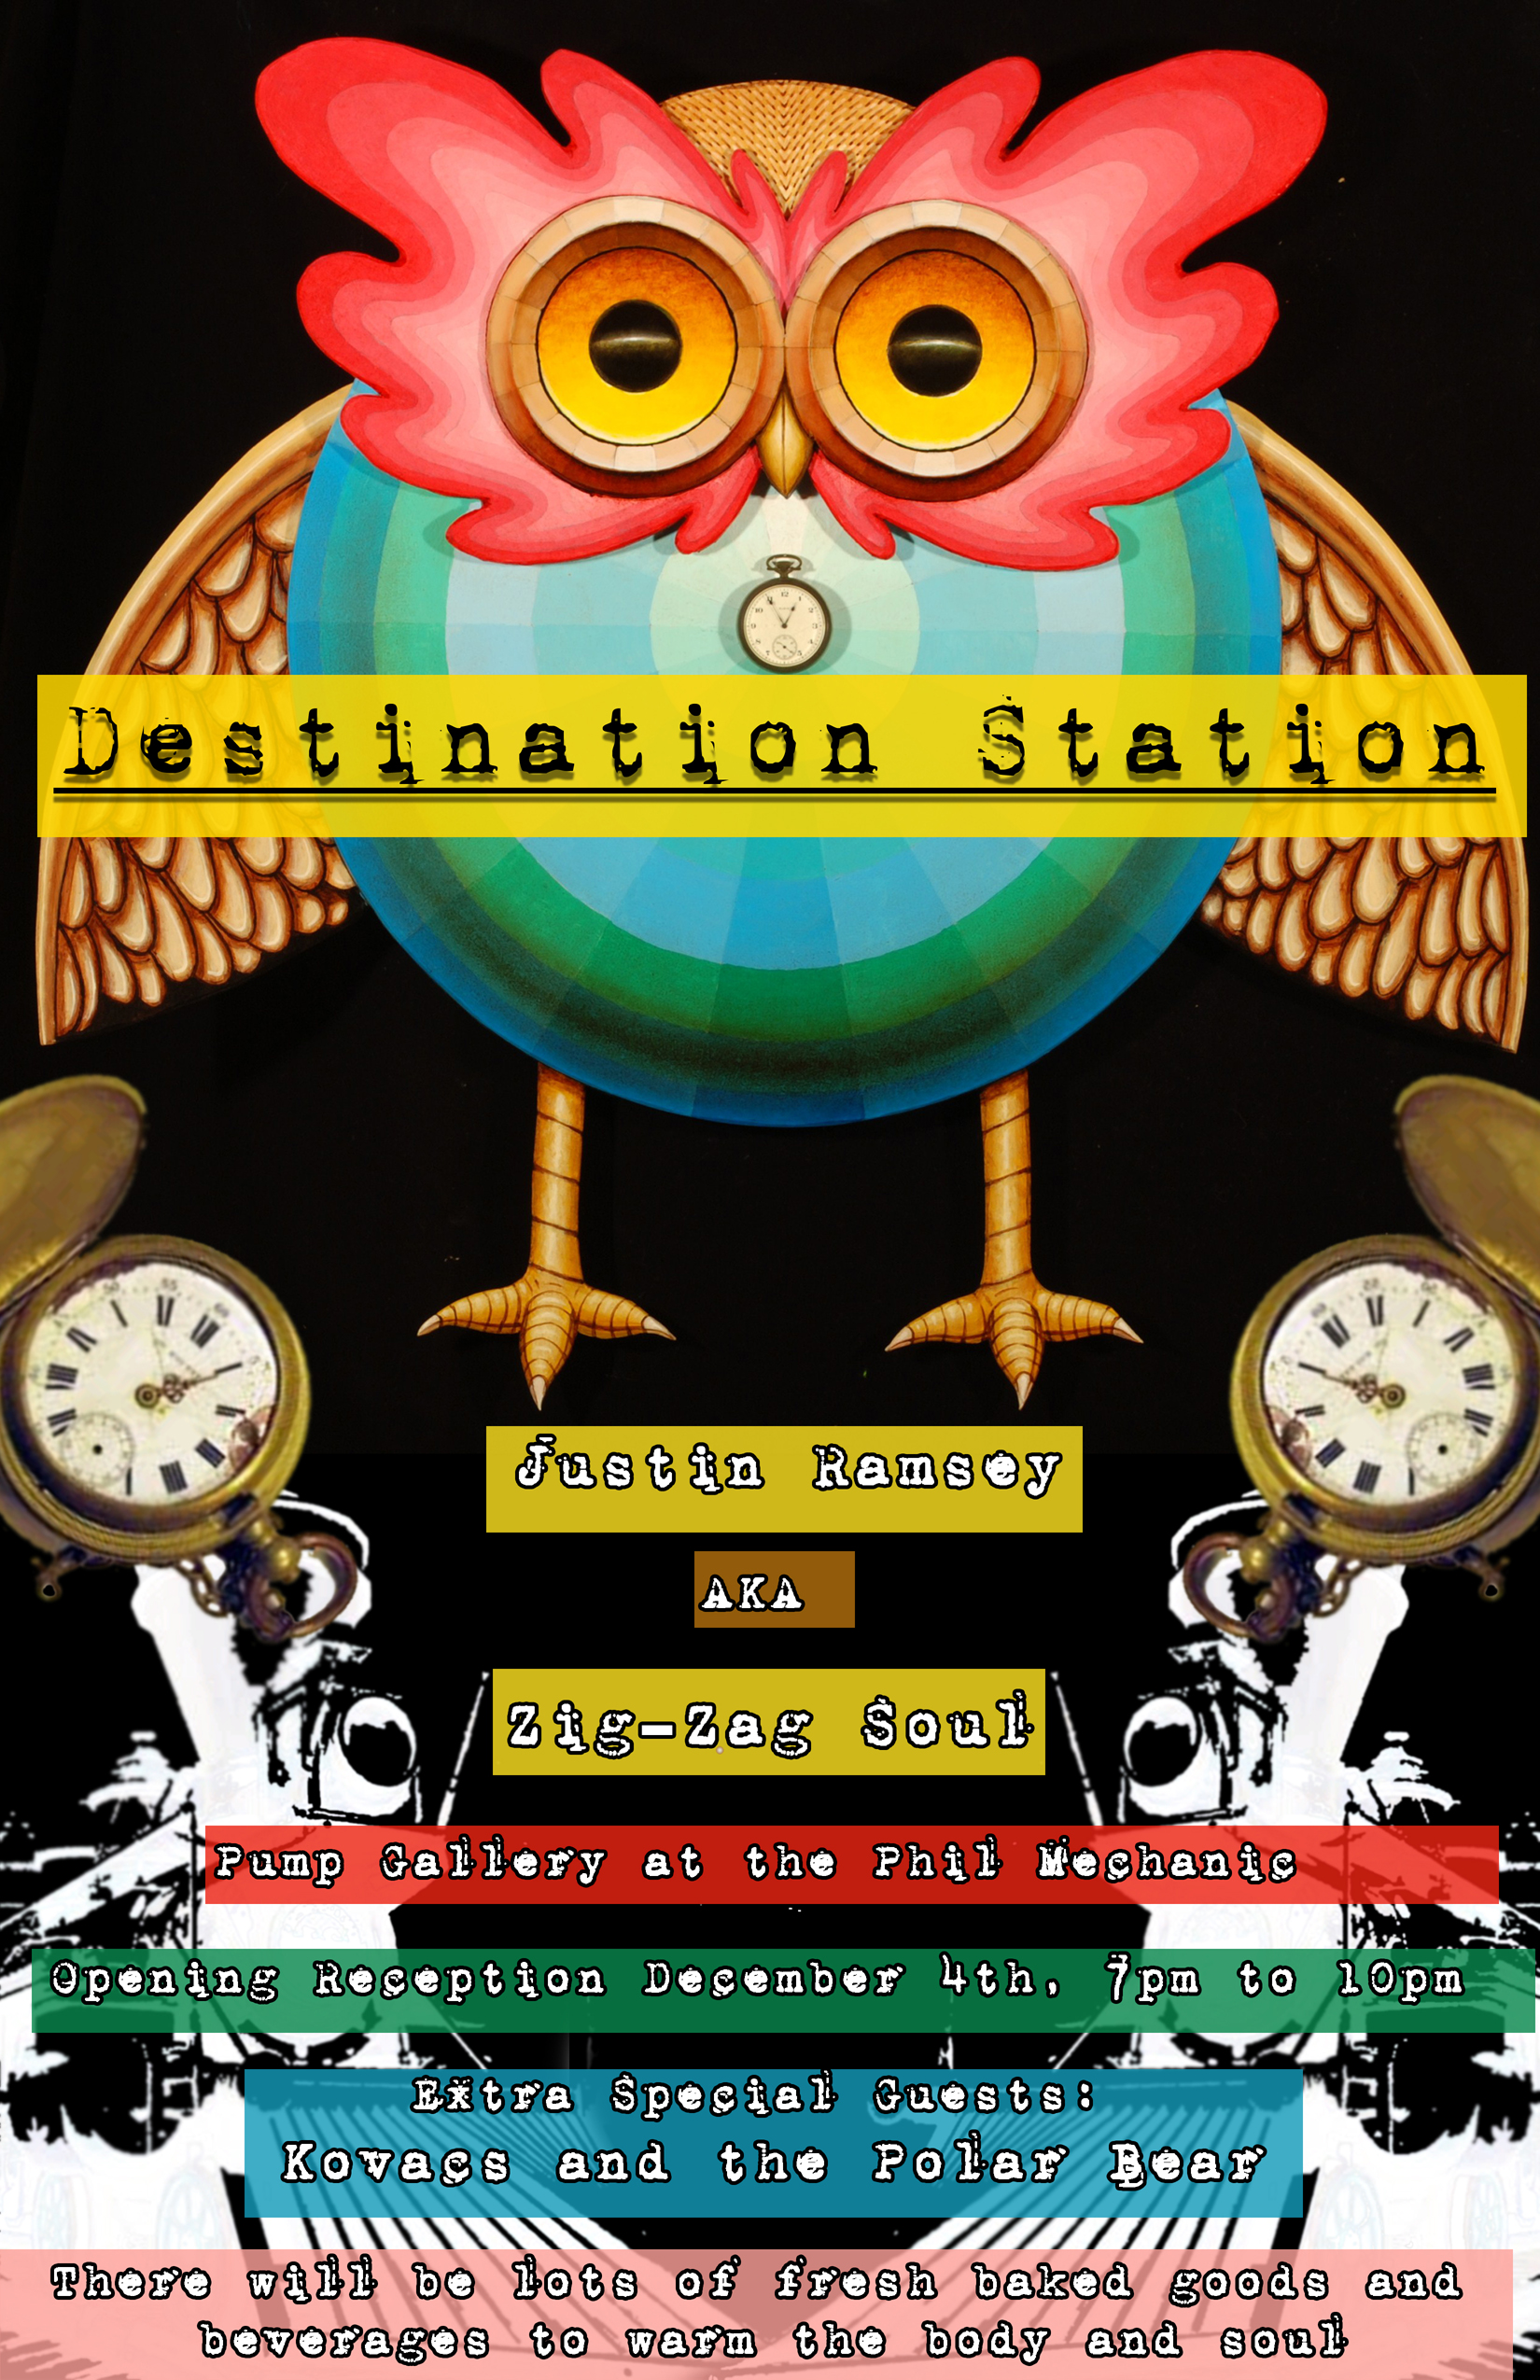 Destination Station Flyer Zig-Zag Solo Show 2010 Pump Gallery at Phil Mechanic